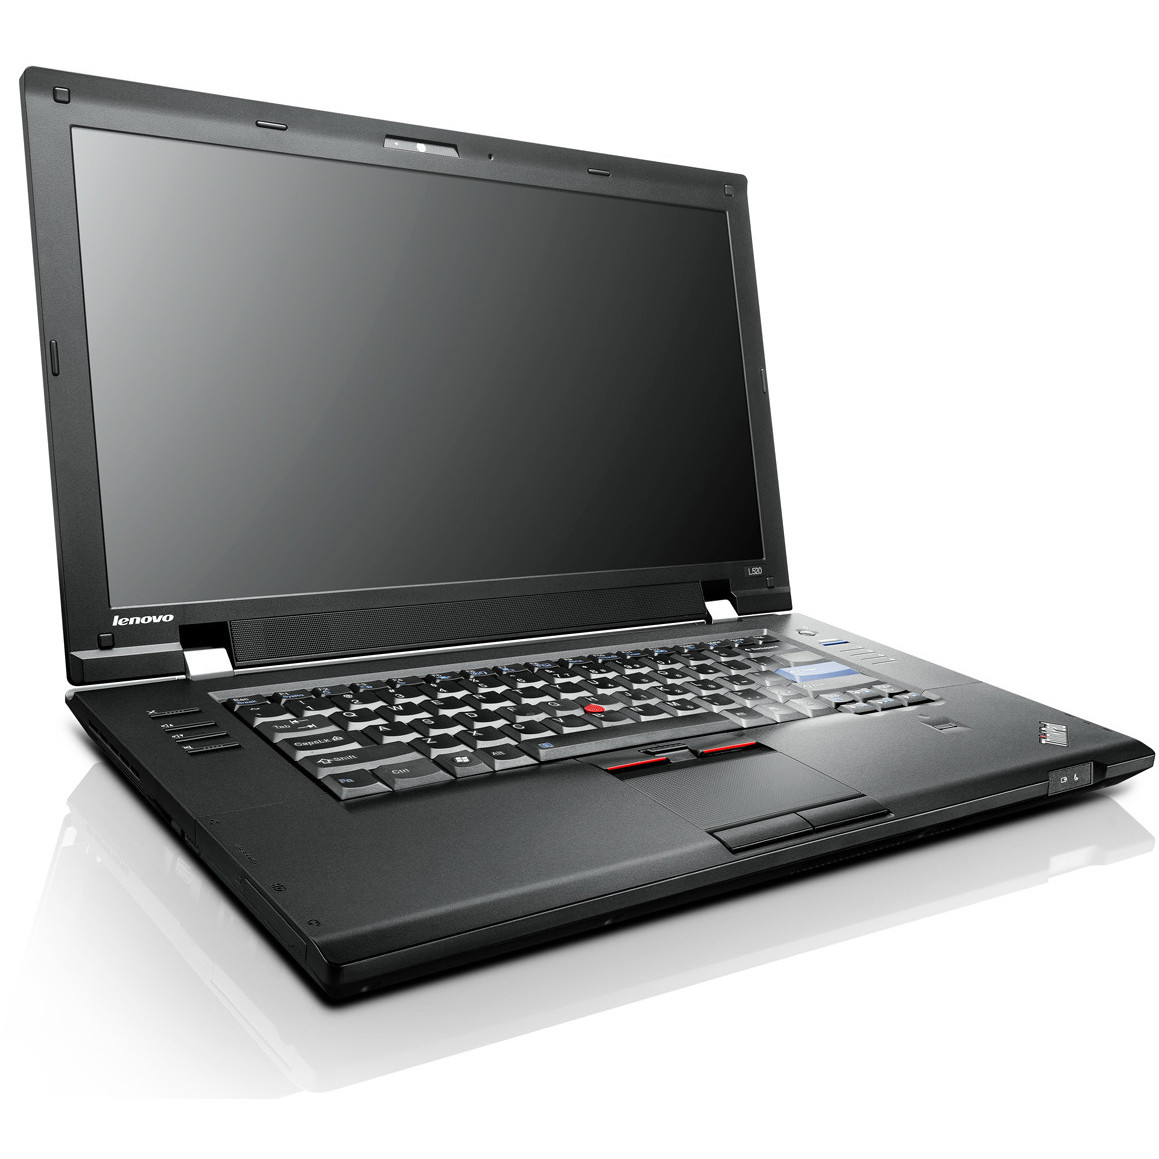 Laptop second hand Thinkpad L520 i3-2310M 2.10GHz 4GB DDR3 160GB HDD Sata DVDRW 15.6inch